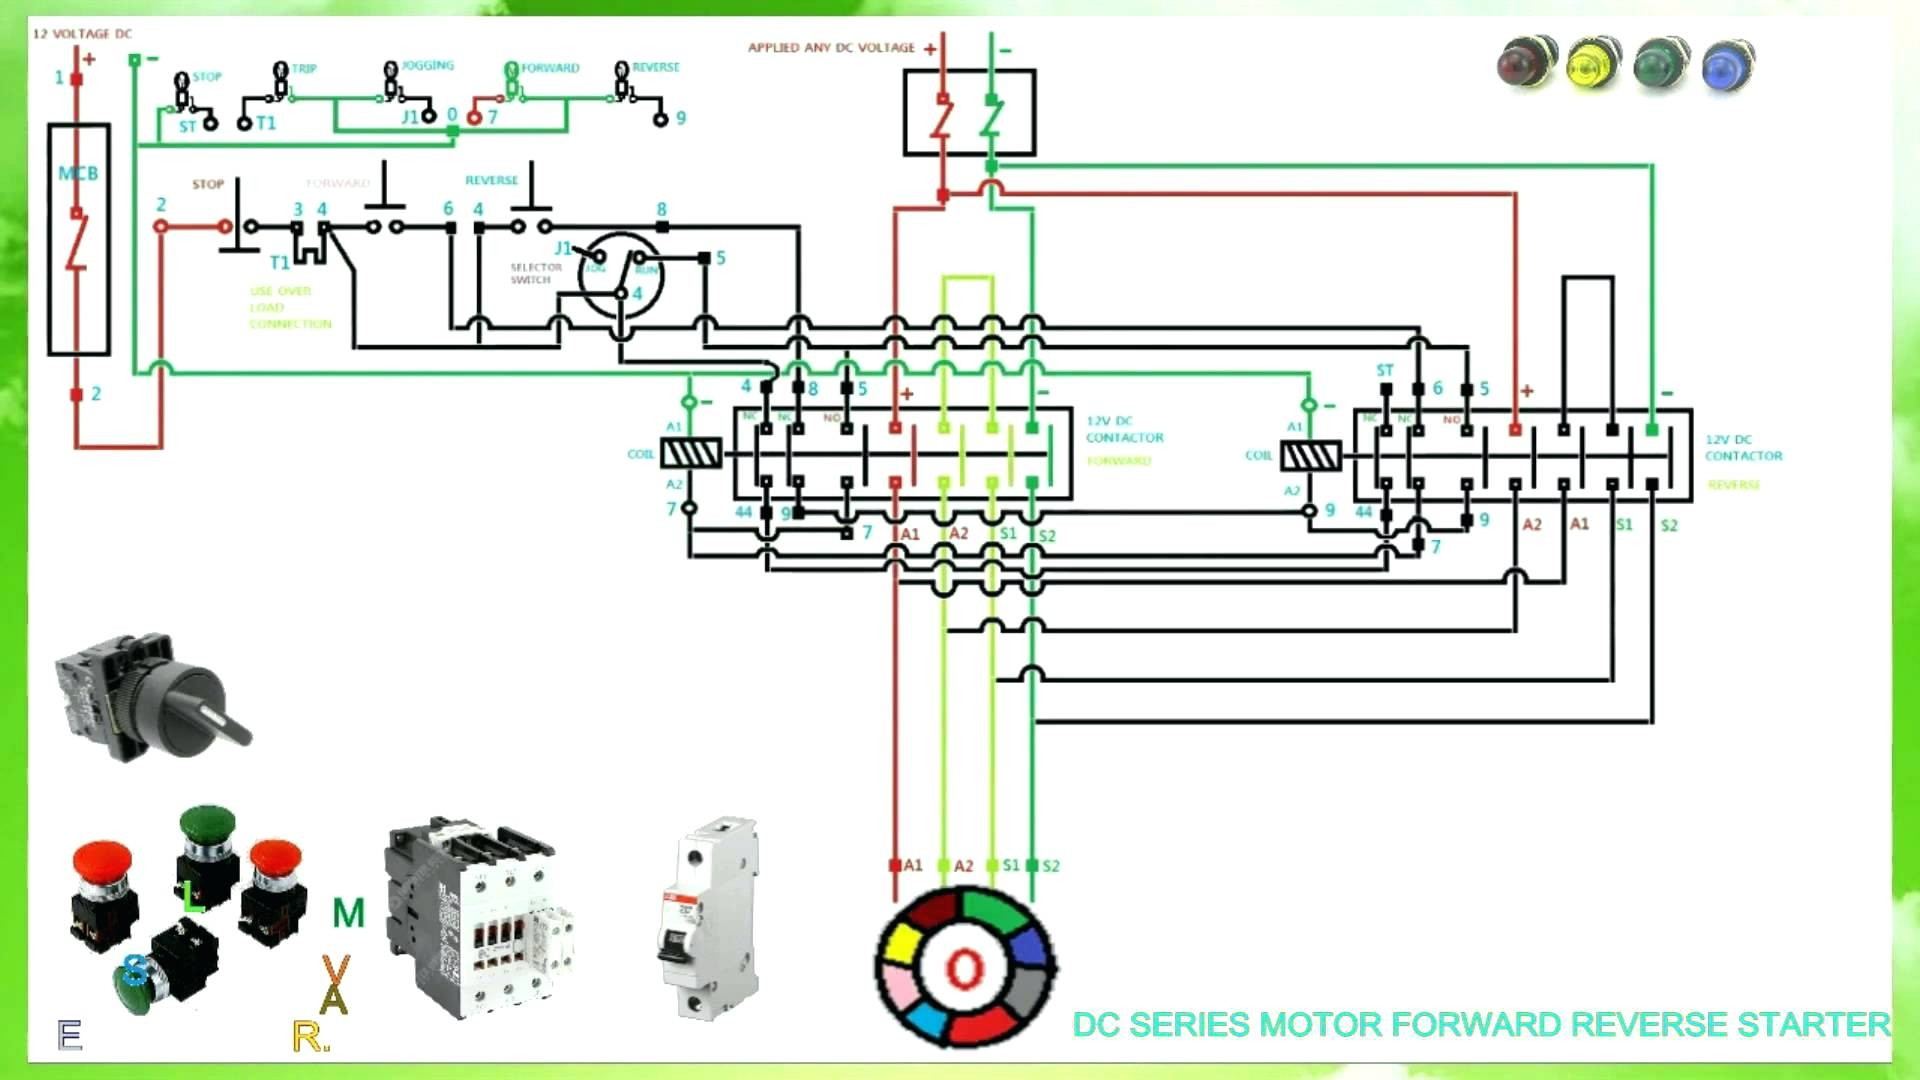 hight resolution of  dol motor control wiring diagram for 3 phase forward reverse starter single